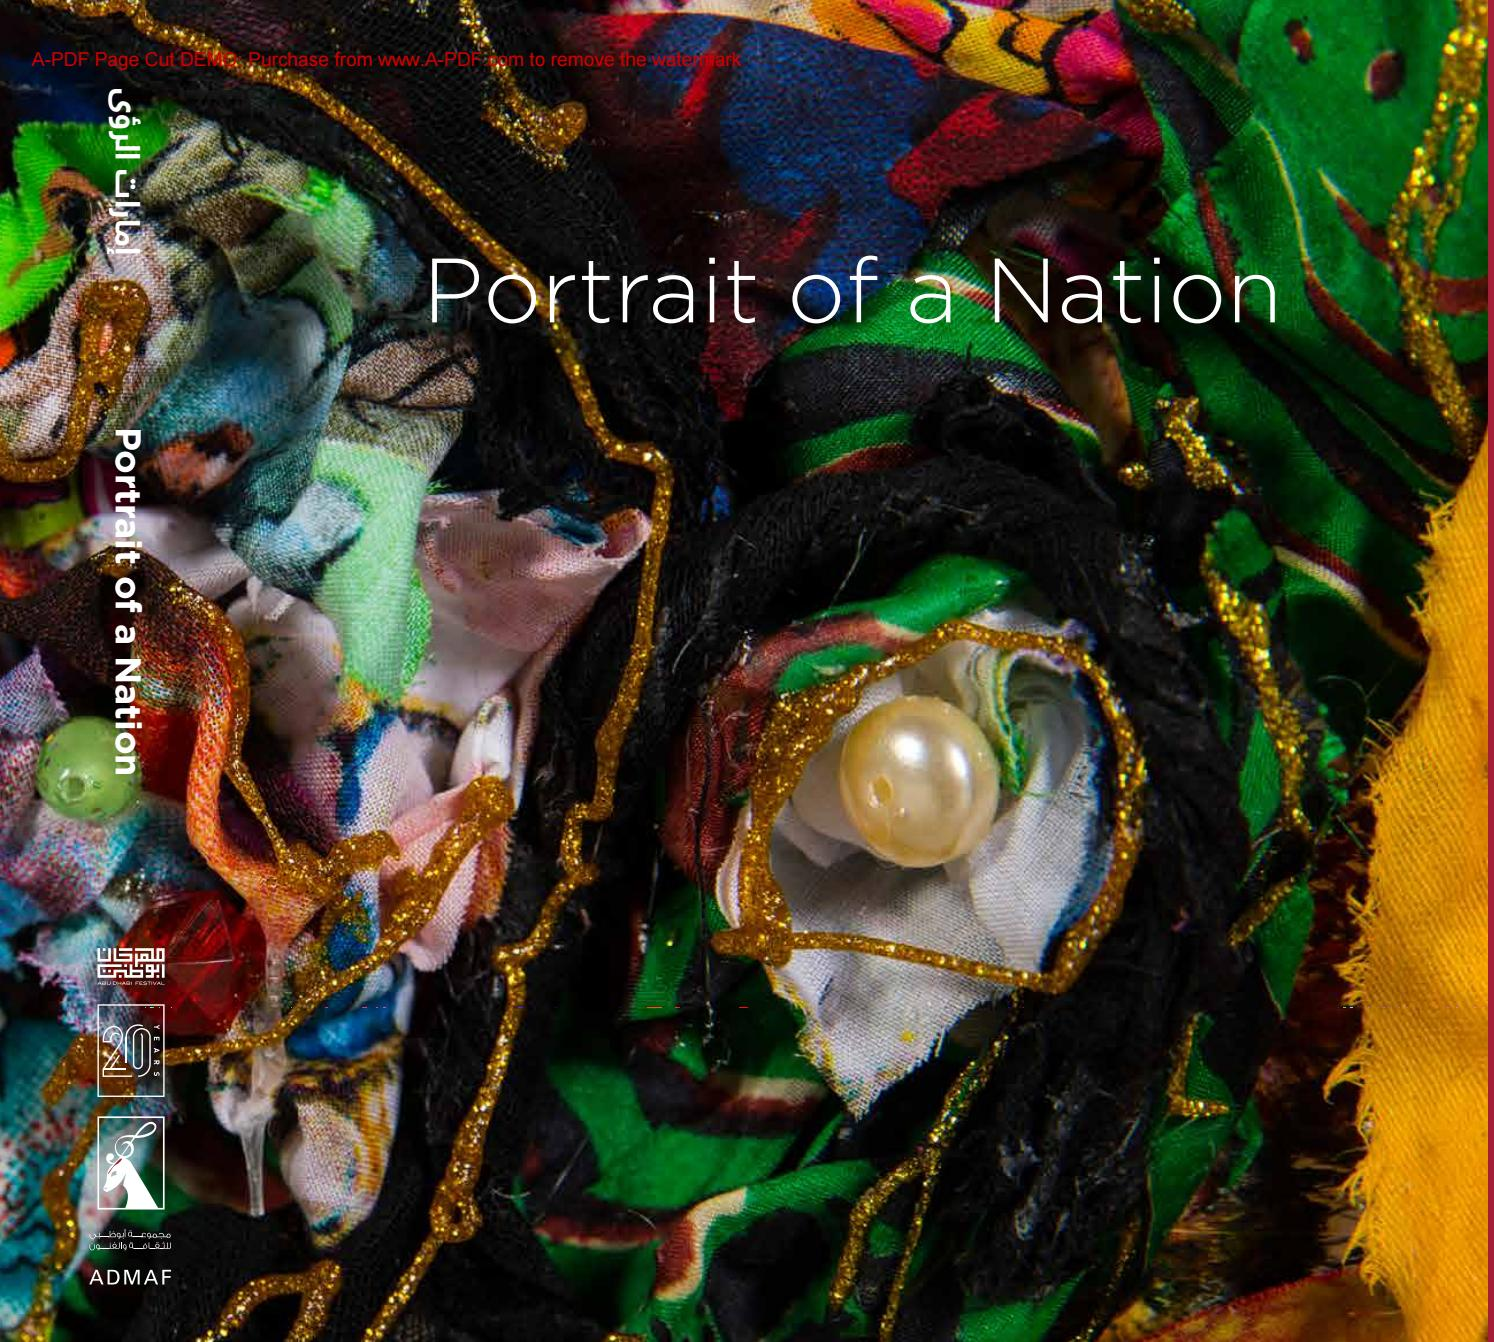 f5a46f82d0adf Portrait of a Nation by Abu Dhabi Festival - issuu